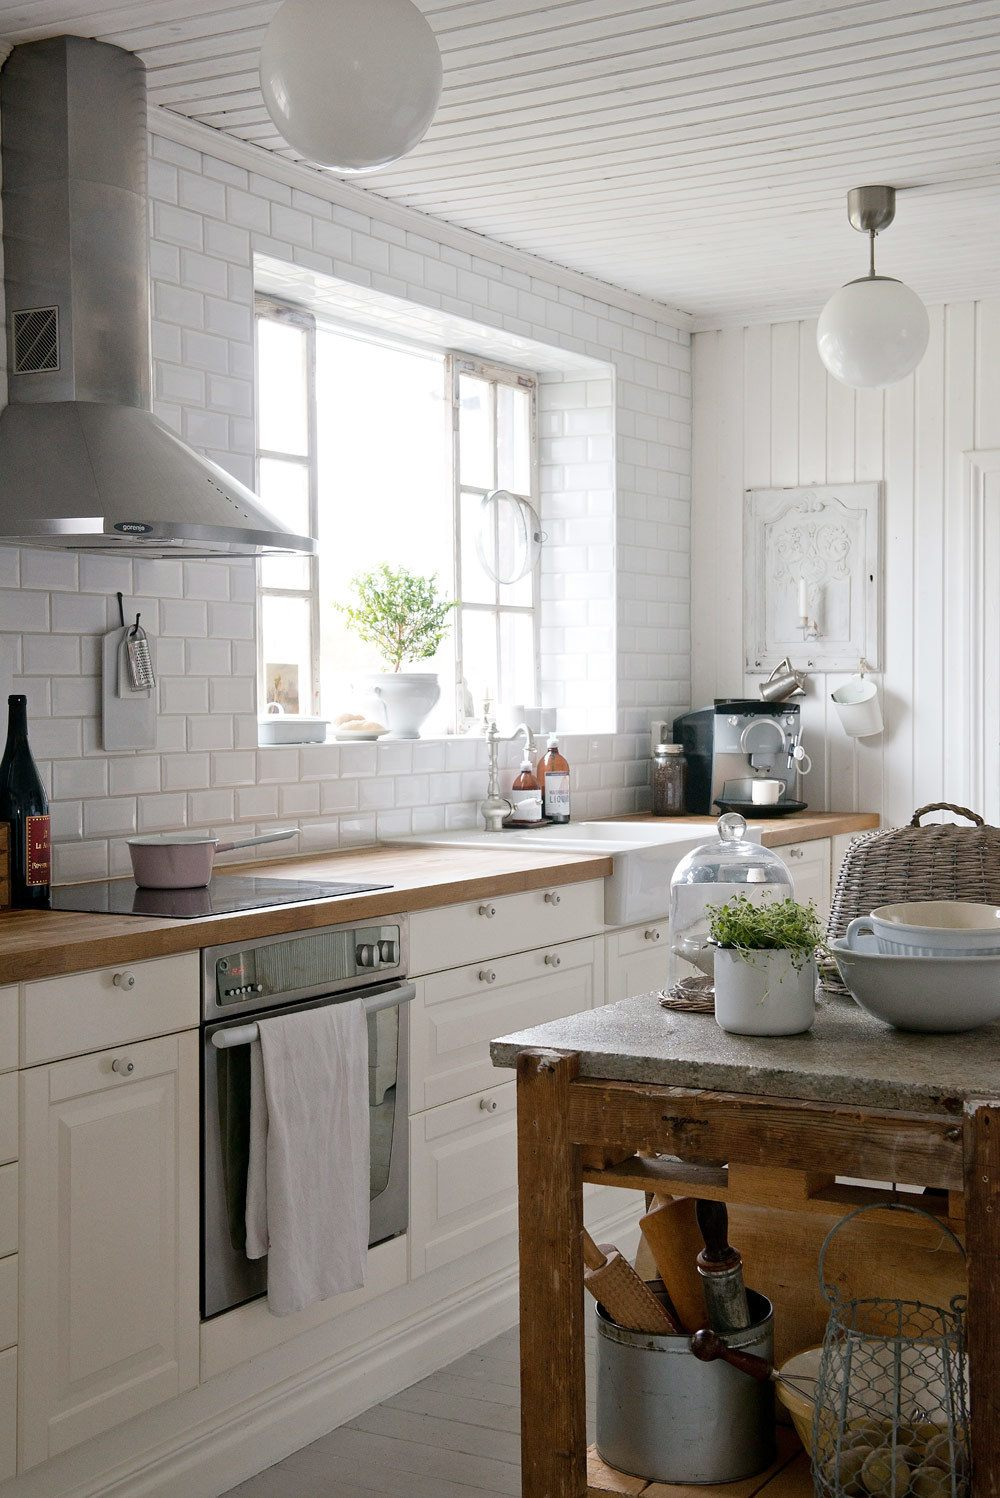 my kitchen dilemma modern or country skimbaco